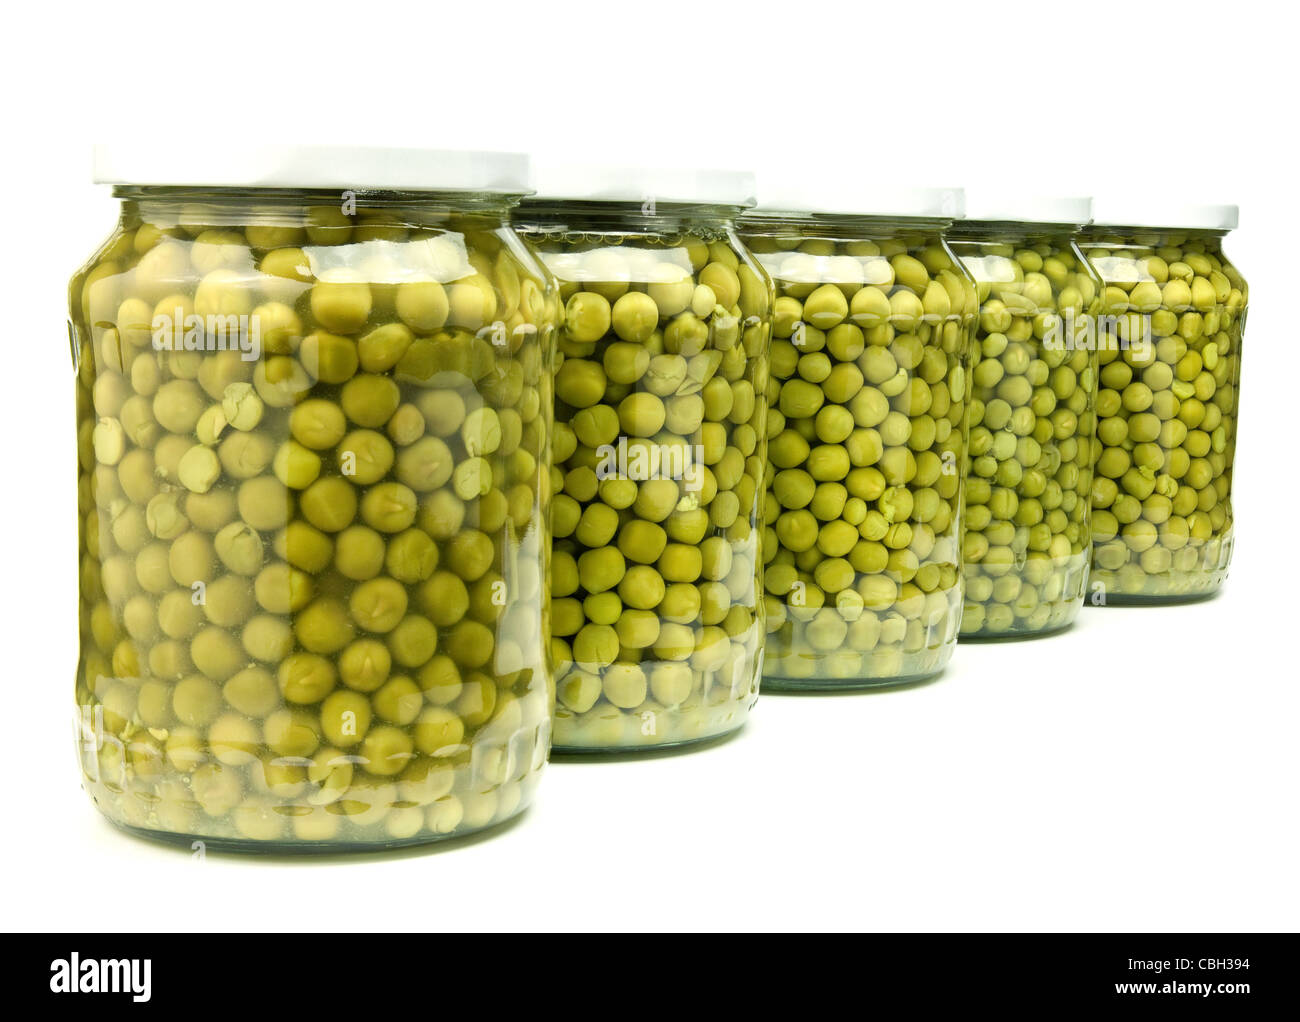 five jars of preserved green peas isolated on white - Stock Image